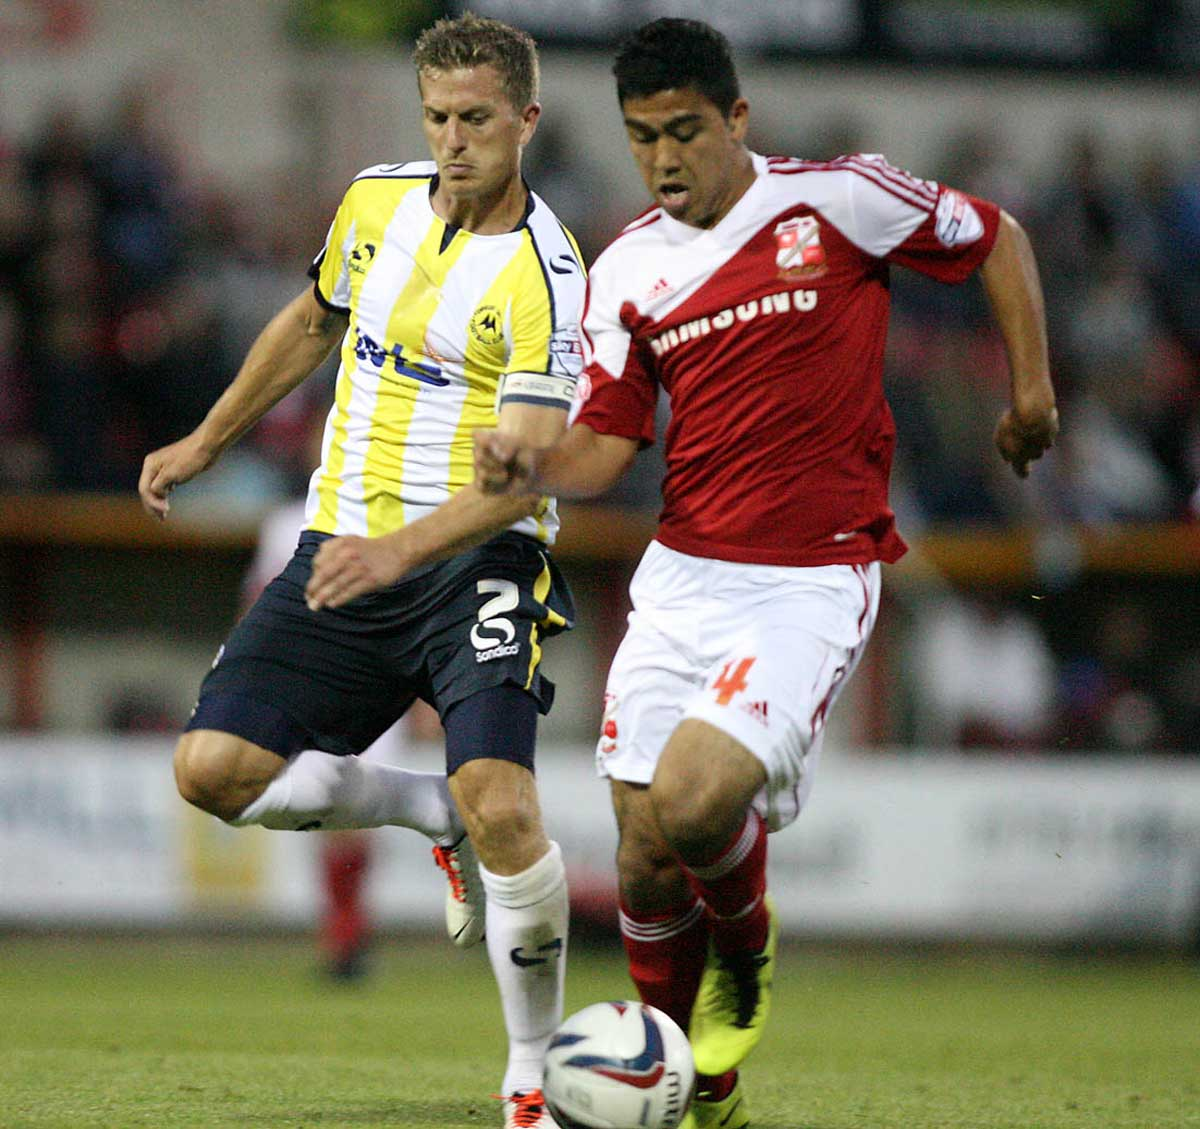 Town's Massimo Luongo, right